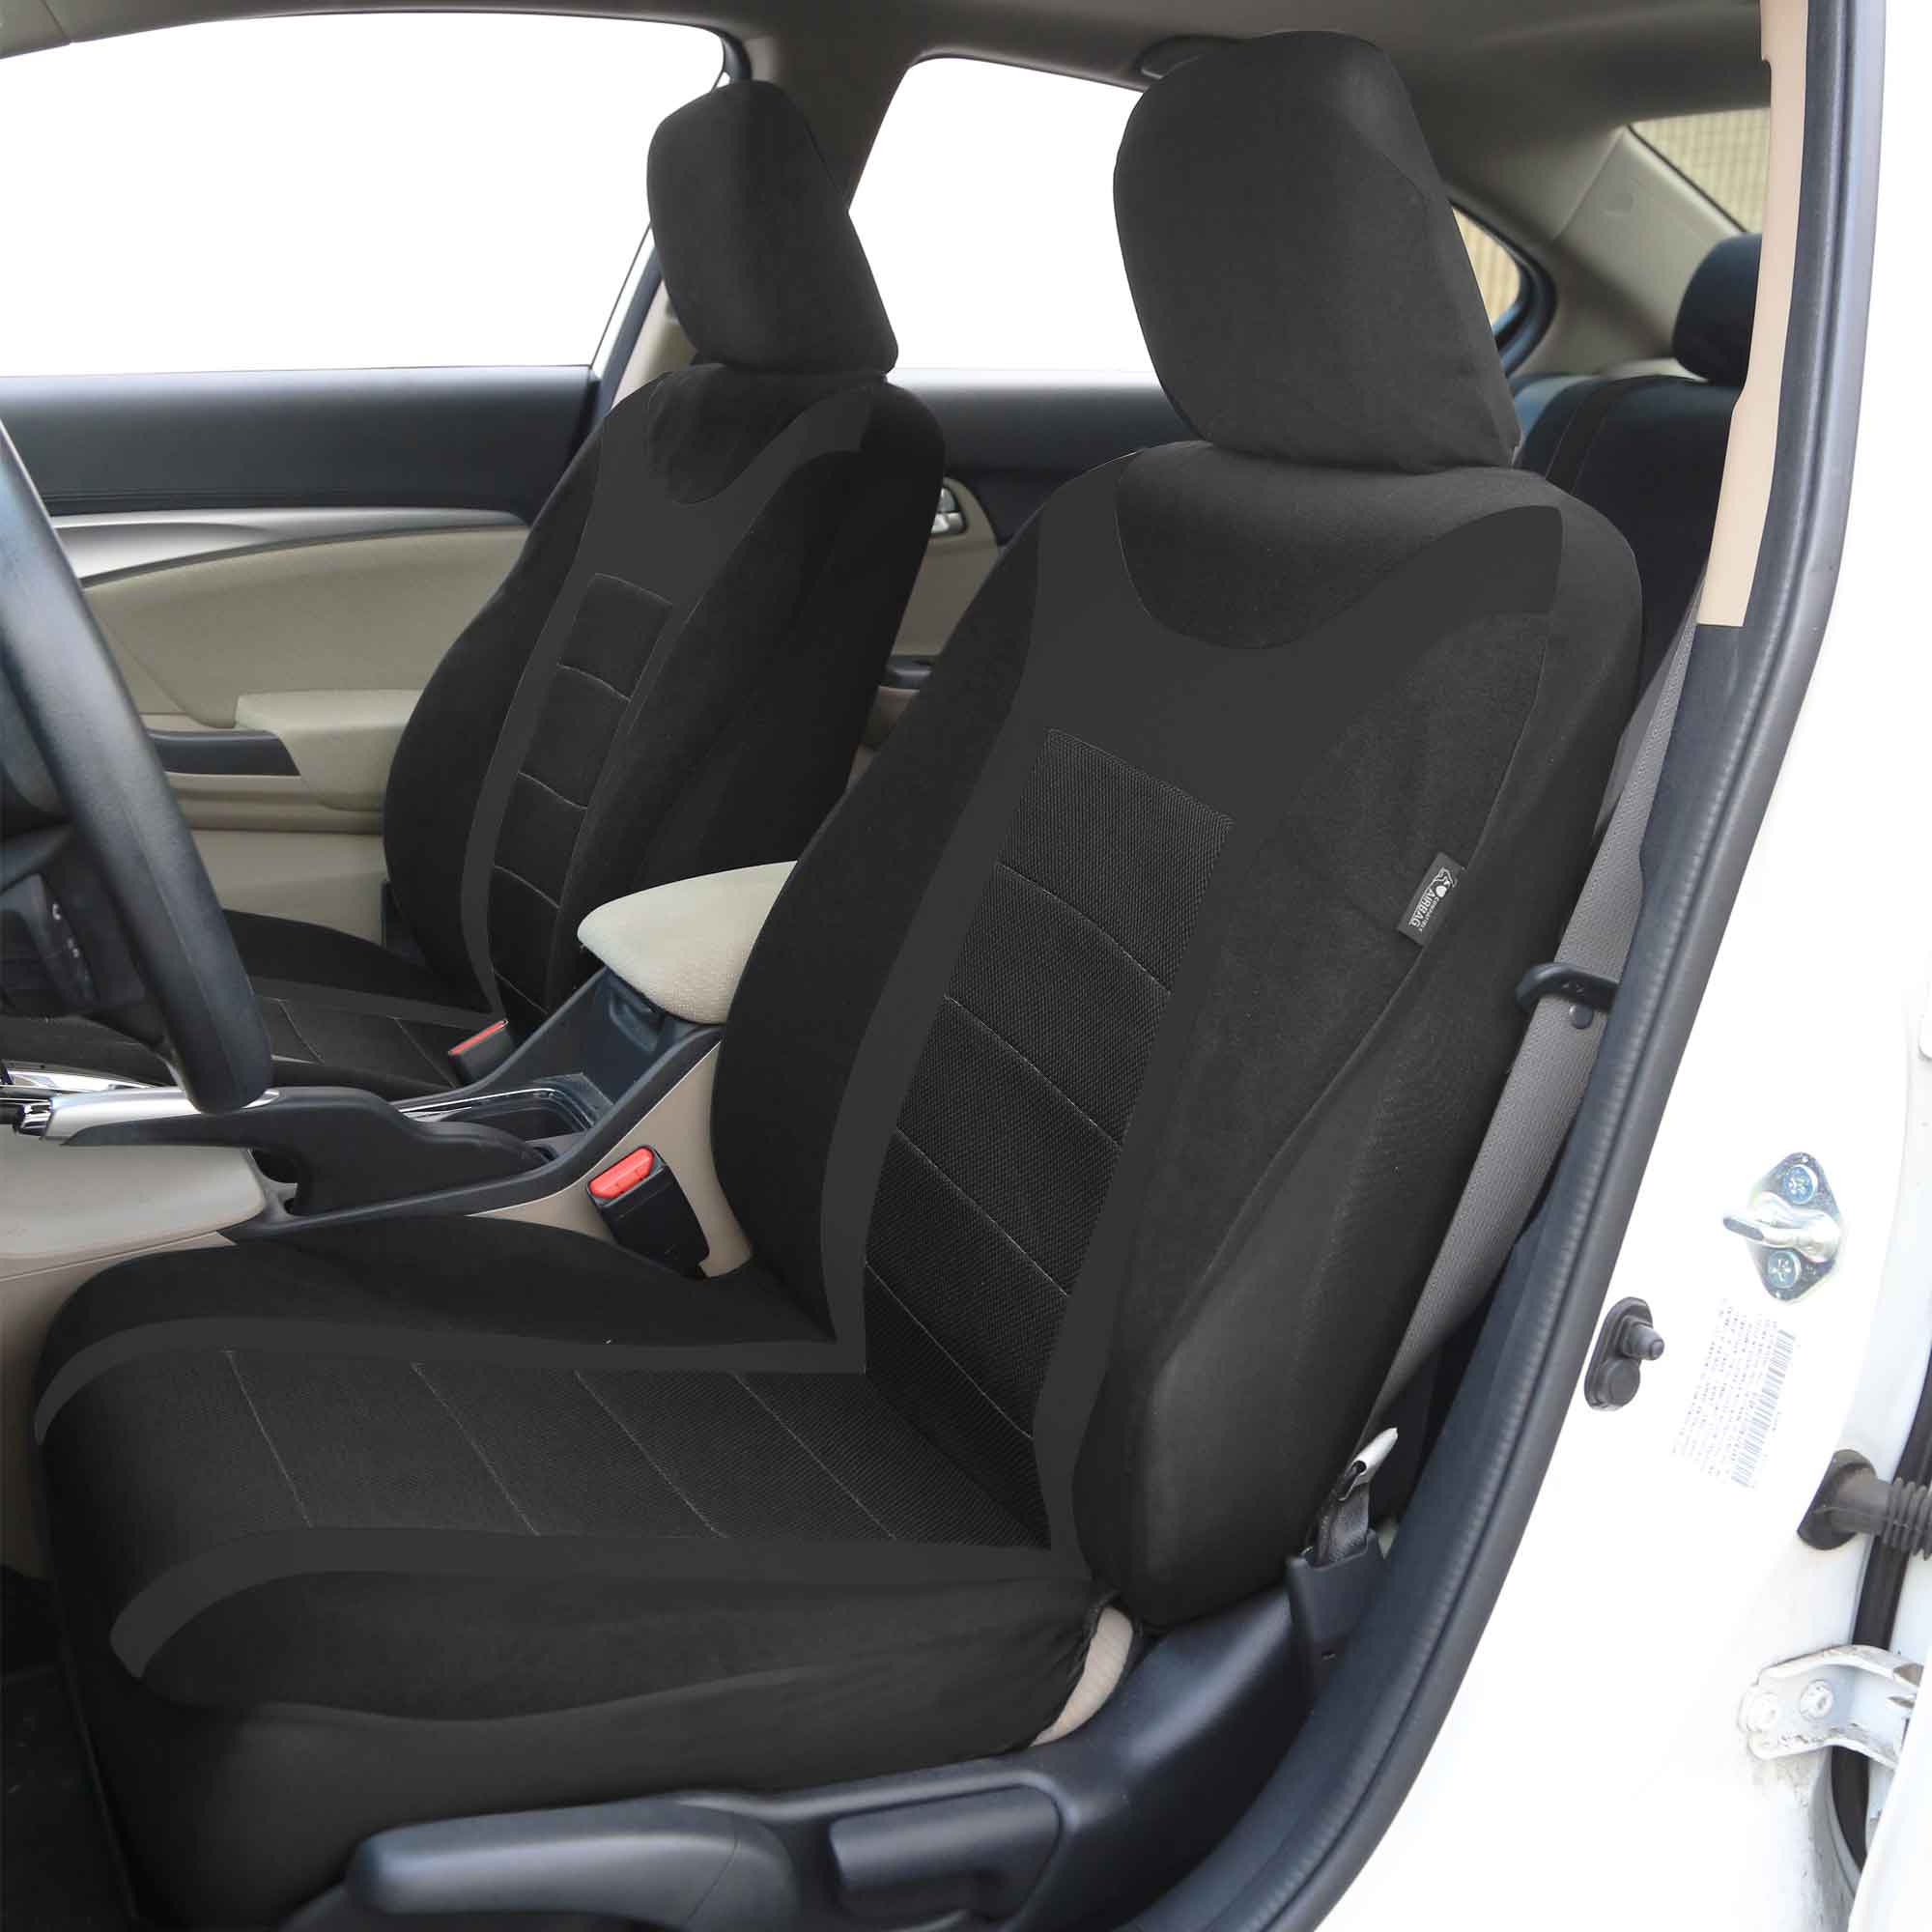 Heavy Truck Seat Covers : Black full ser car seat cover for auto with heavy duty